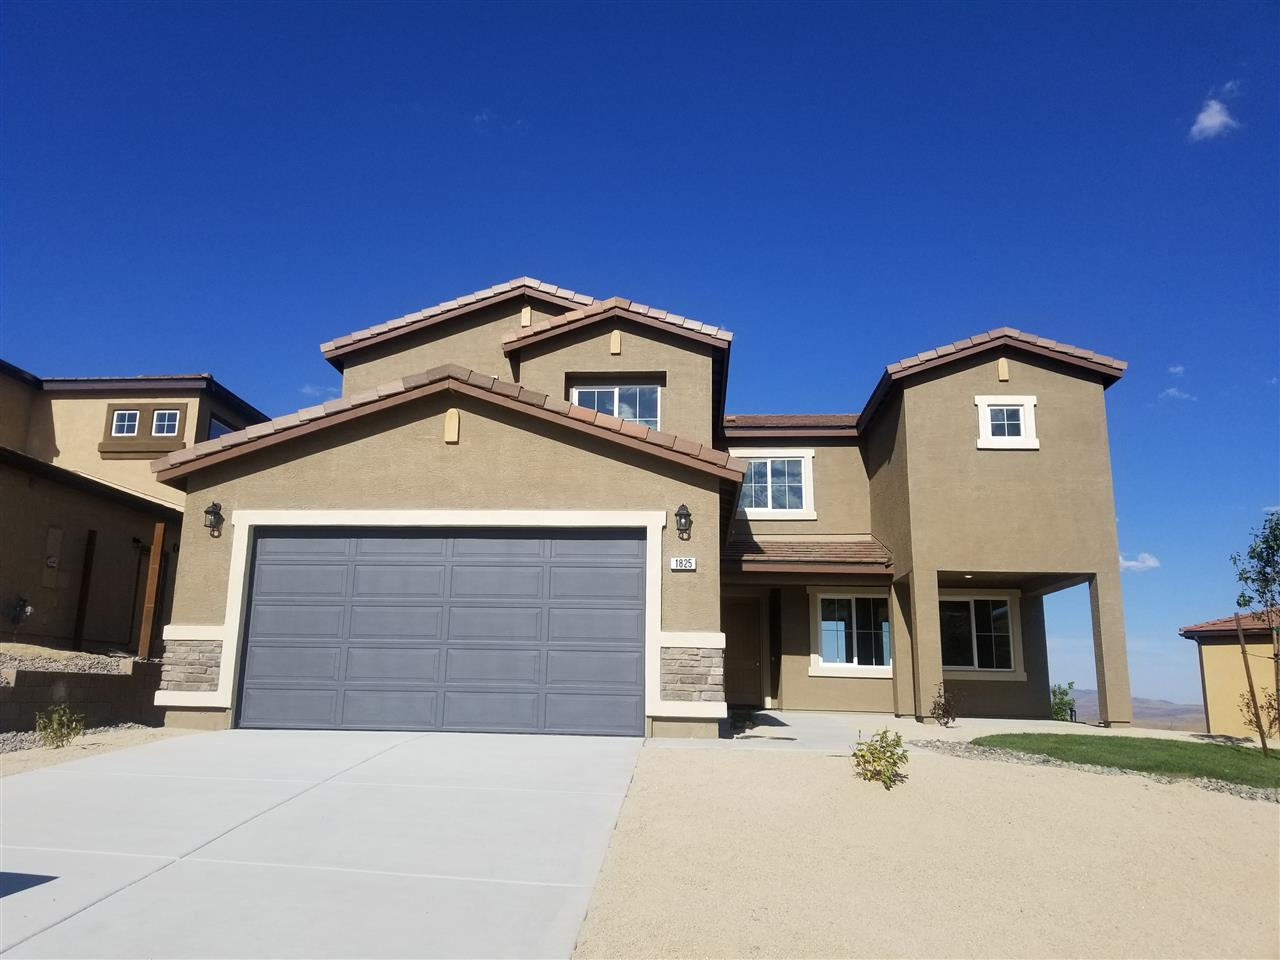 Image for 1825 Dream Catcher Ct., Sun Valley, NV 89433